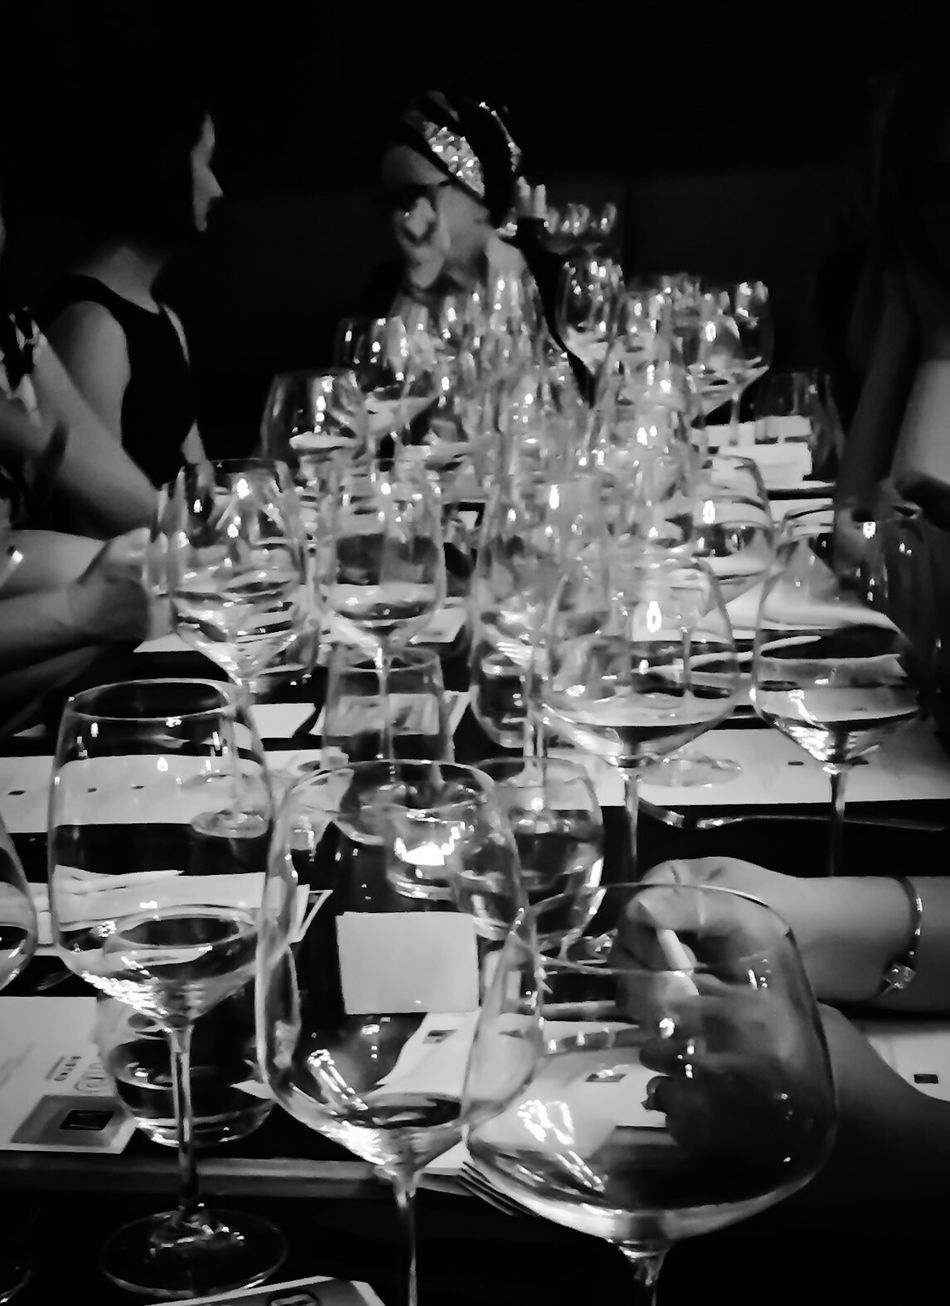 Wineglass Drinks Wine Dinner Night Blackandwhite Black And White Glasses Girls Night Out Thirsty  Live, Love, Laugh Waiting For A Refill Canberra